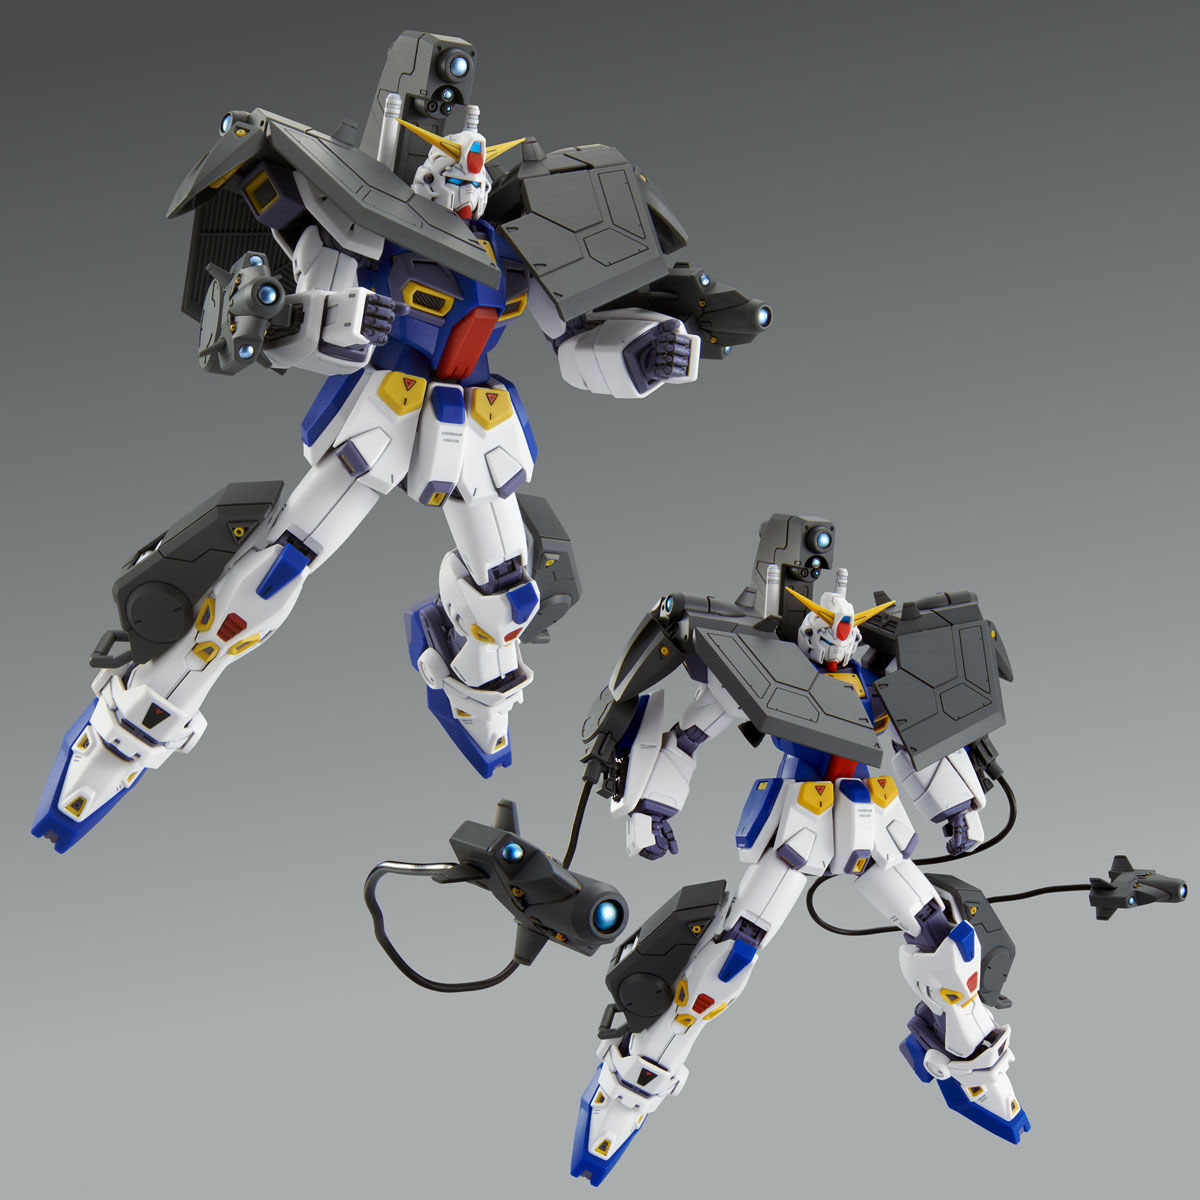 MG 1/100 MISSION PACK R-TYPE & V-TYPE for GUNDAM F90 [July 2021 Delivery]